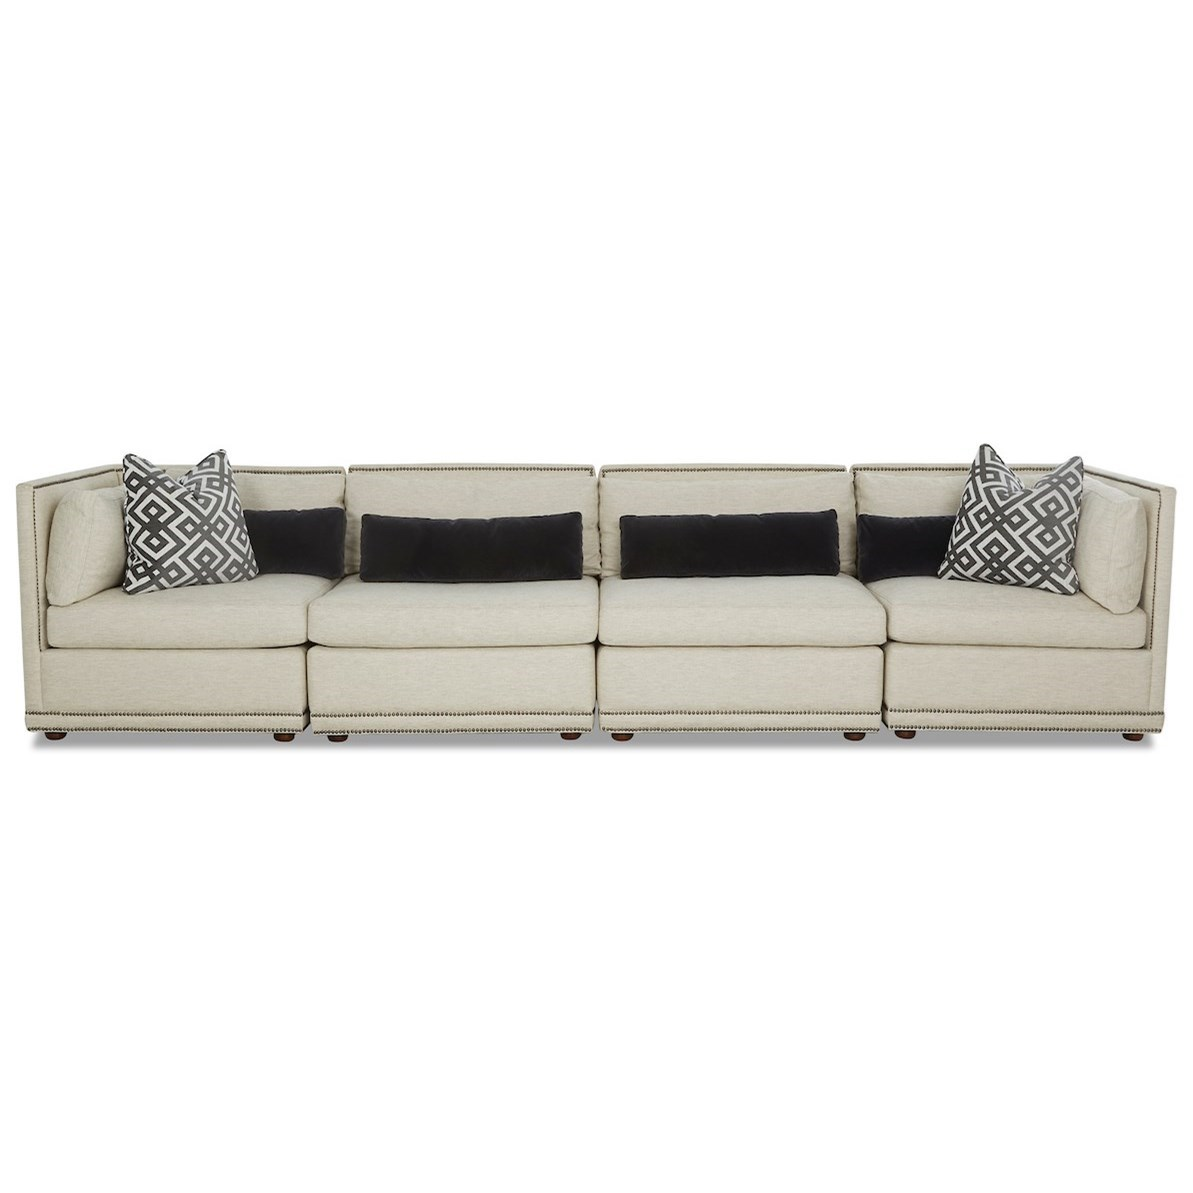 Rexford 4-Seat Sectional Sofa by Klaussner at Johnny Janosik